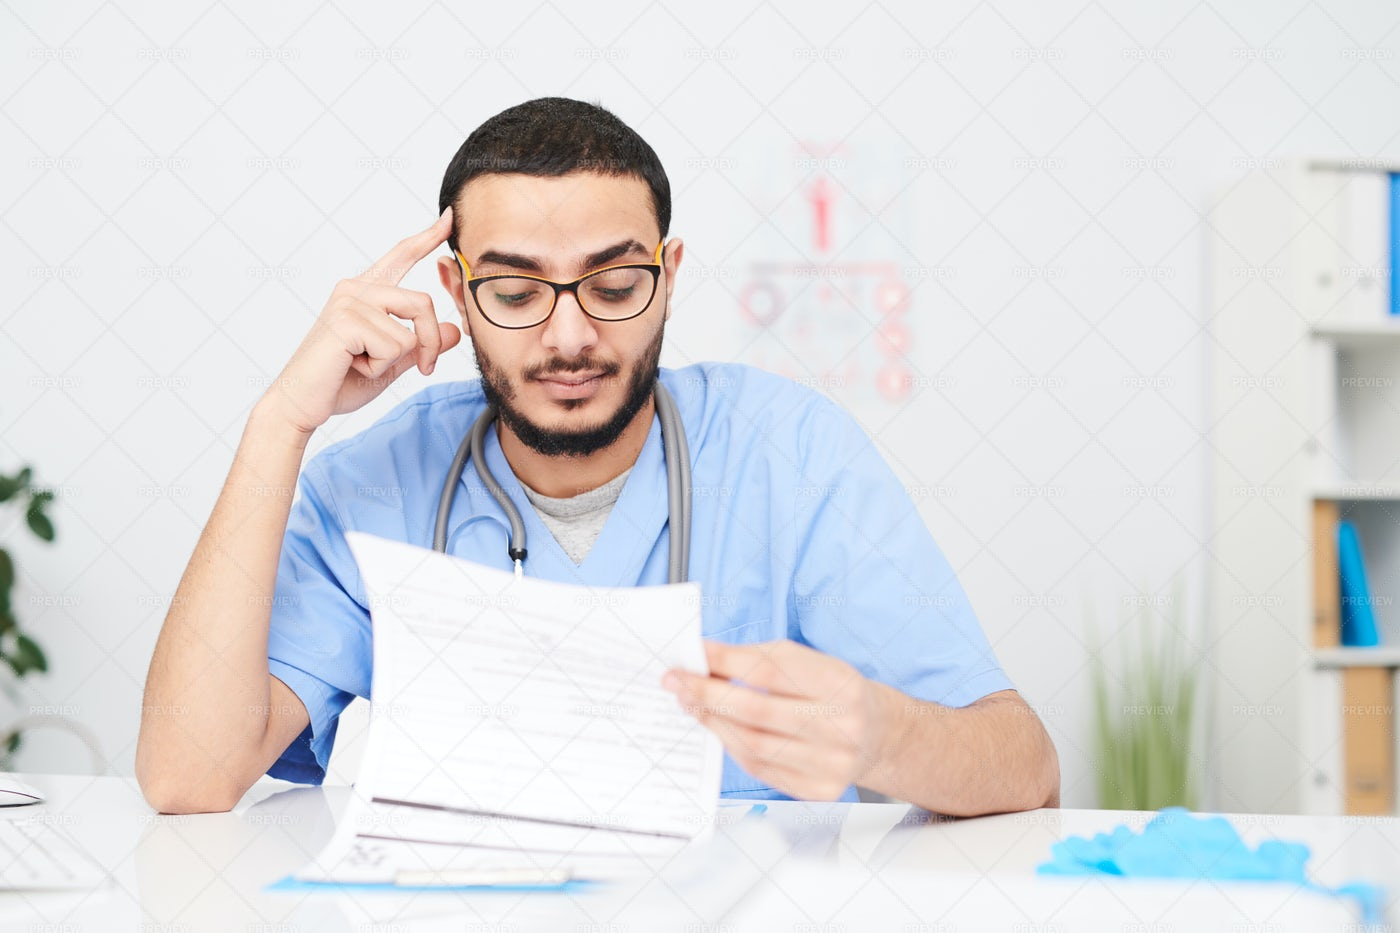 Pensive Middle-Eastern Doctor...: Stock Photos